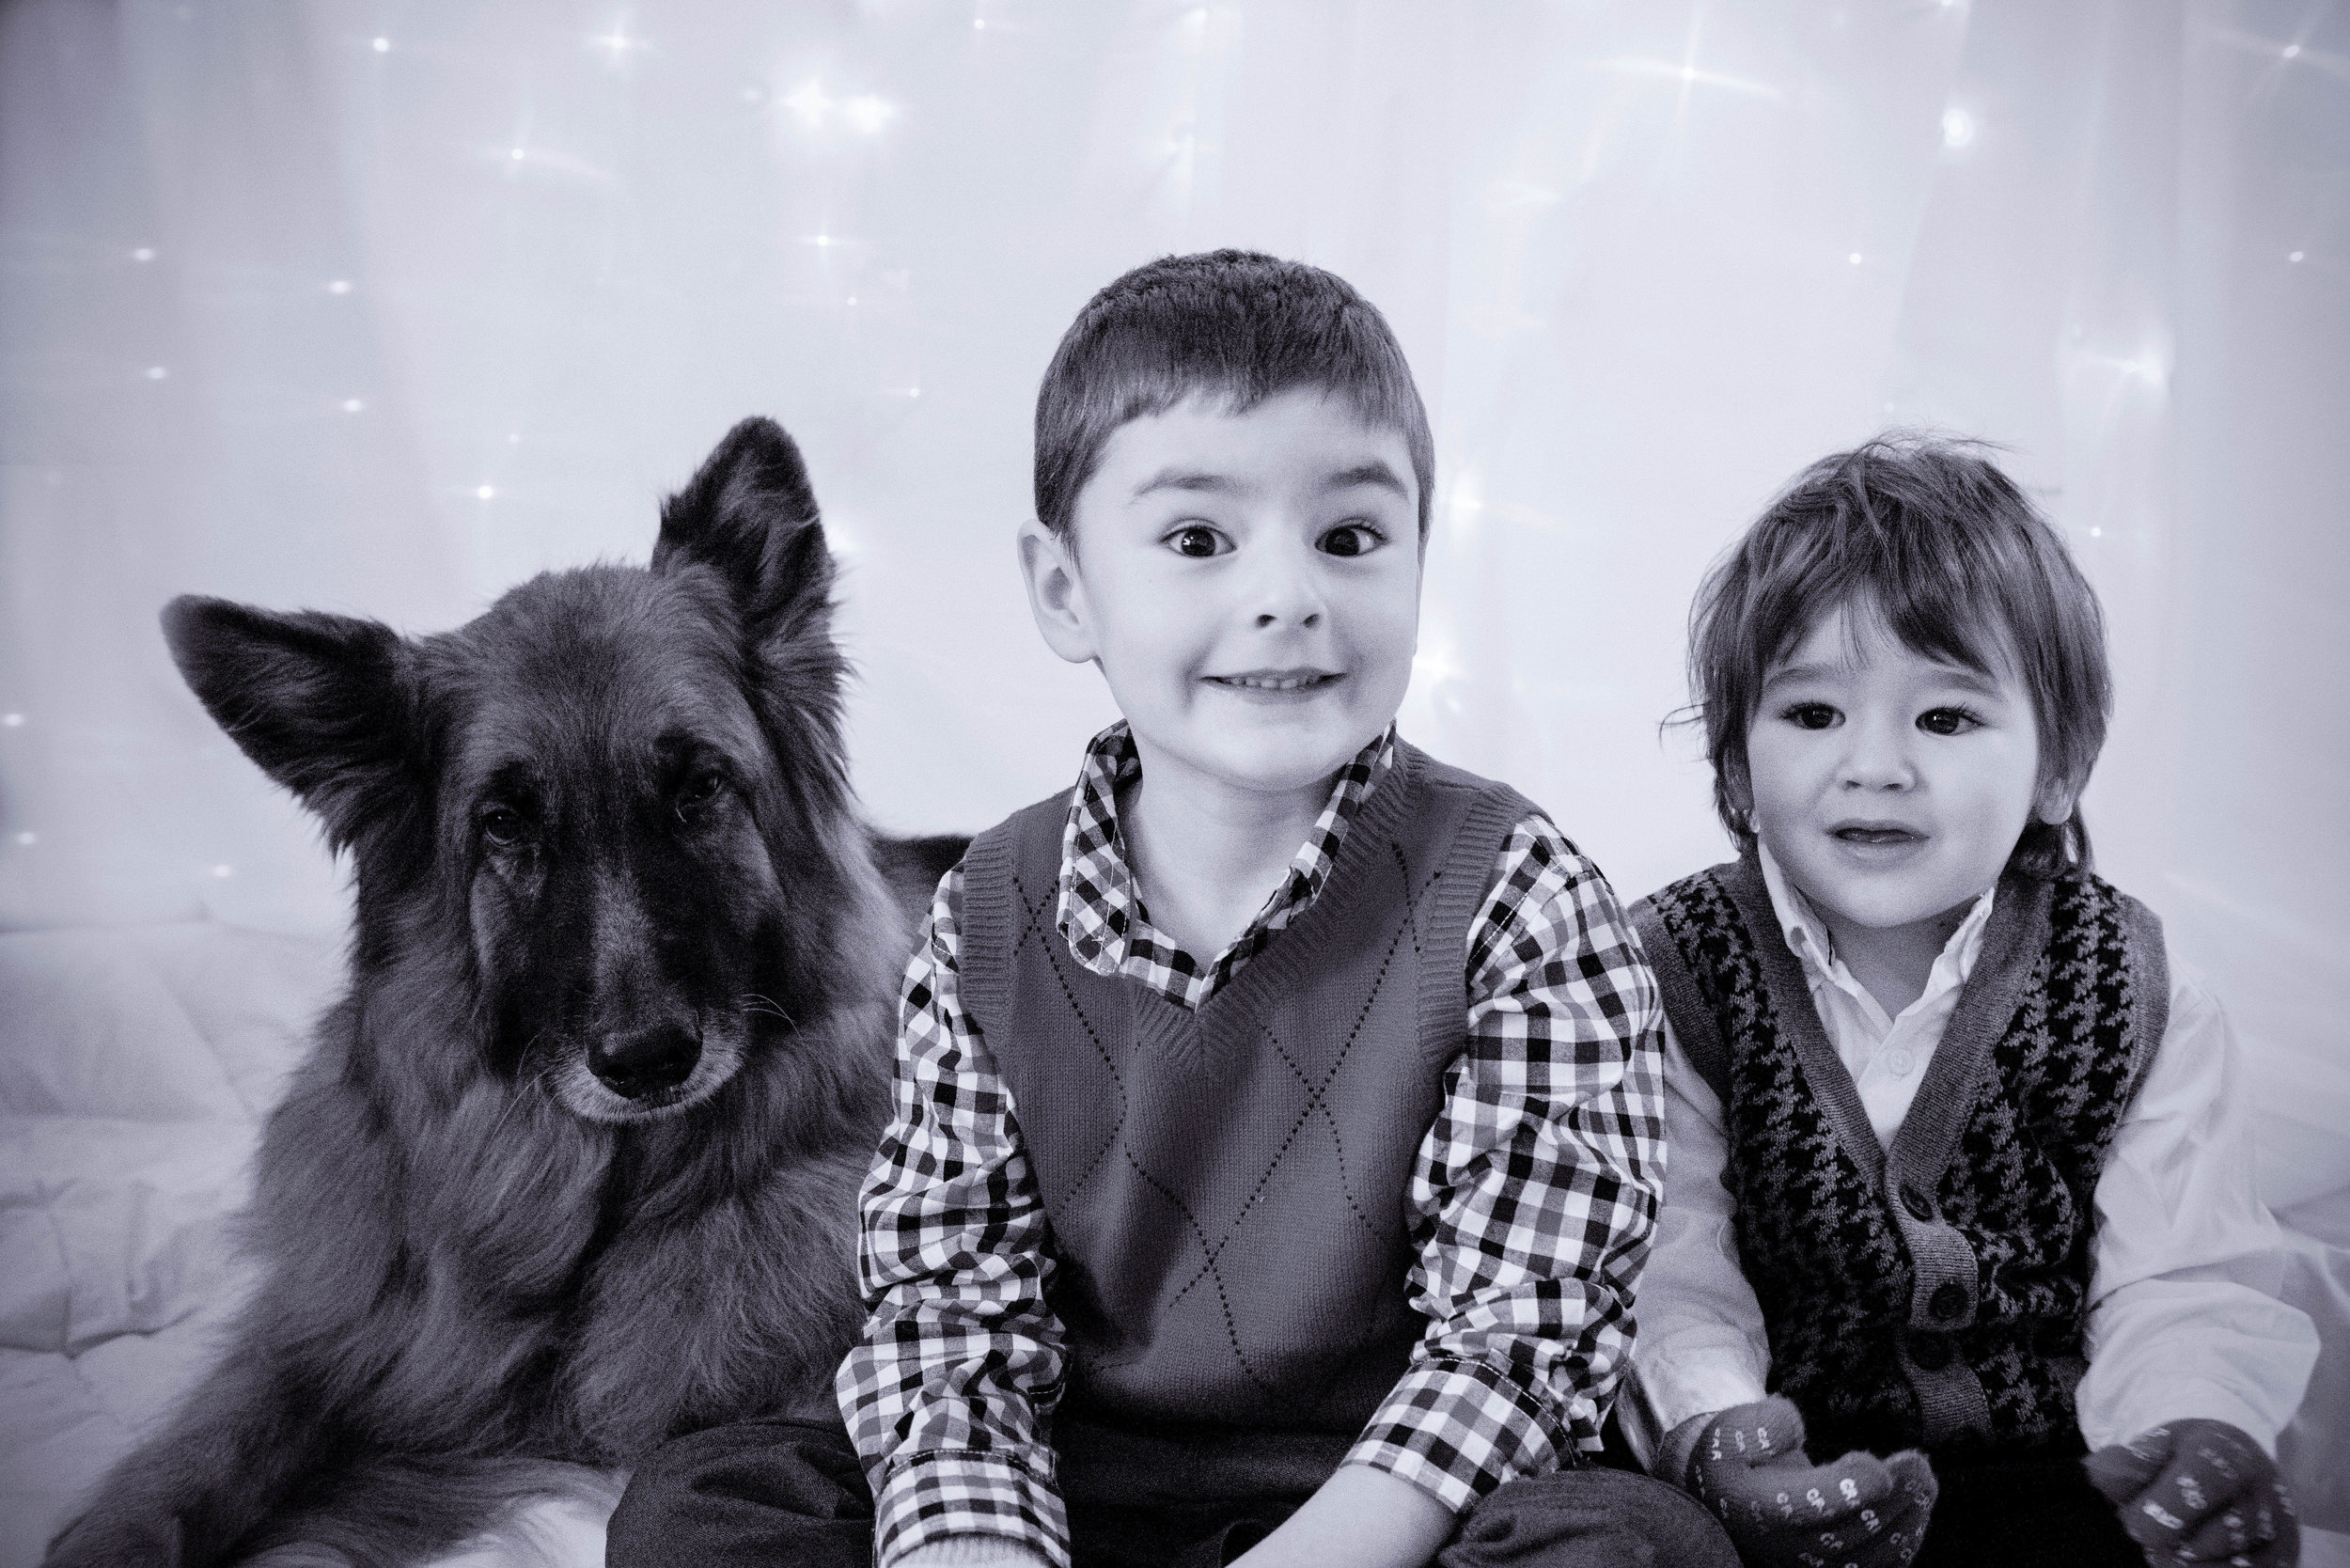 An outtake of my boys with our German Shepherd posing for the Christmas Card photo. Only photographer's kids give these looks - www.lisavillellaphotography.com